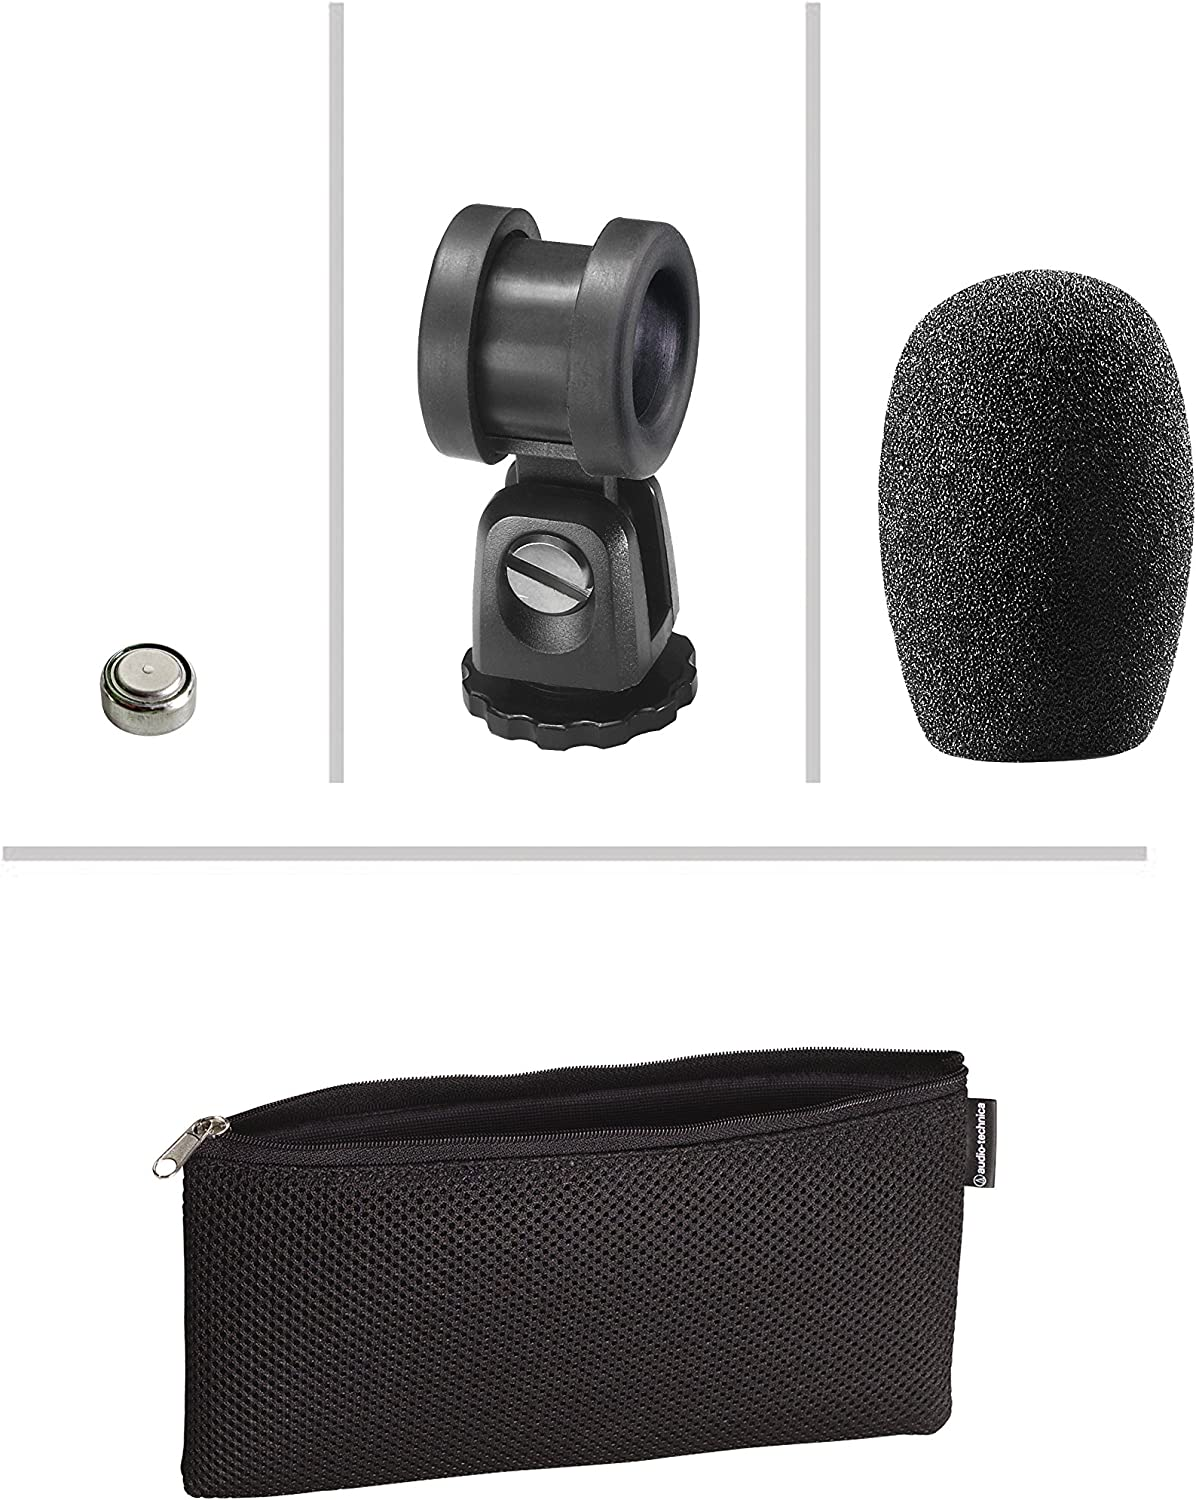 Audio-Technica PRO 24-cm Lightweight On-Camera Microphone with Windscreen Protective Pouch Cleaning Kit and 1-Year Extended Warranty